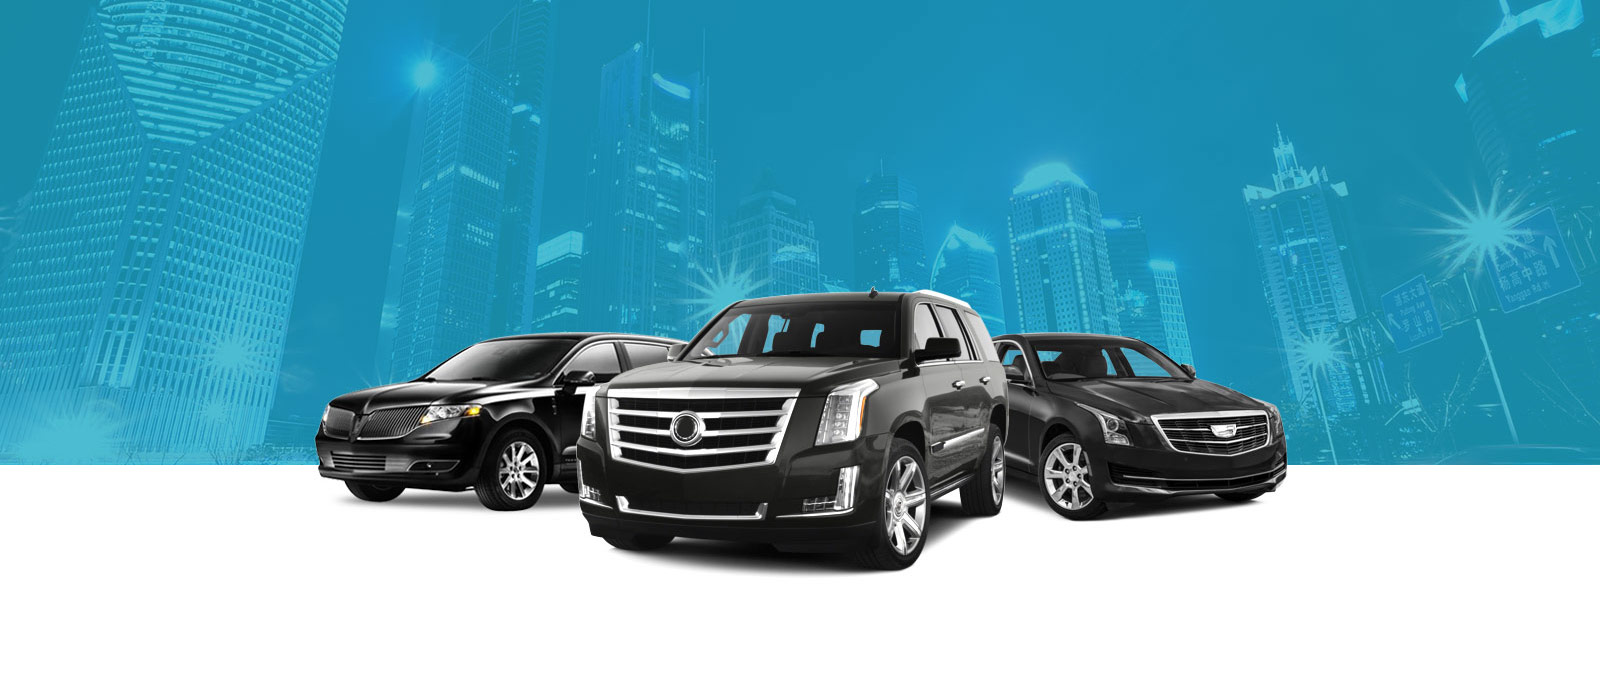 SUV Chicago Limo, SUV Limo Chicago, Car Service Union Station Chicago, Stretch SUV Limousine Service, Fleet, All American Limousine, Cadillac Escalade, Book Limo